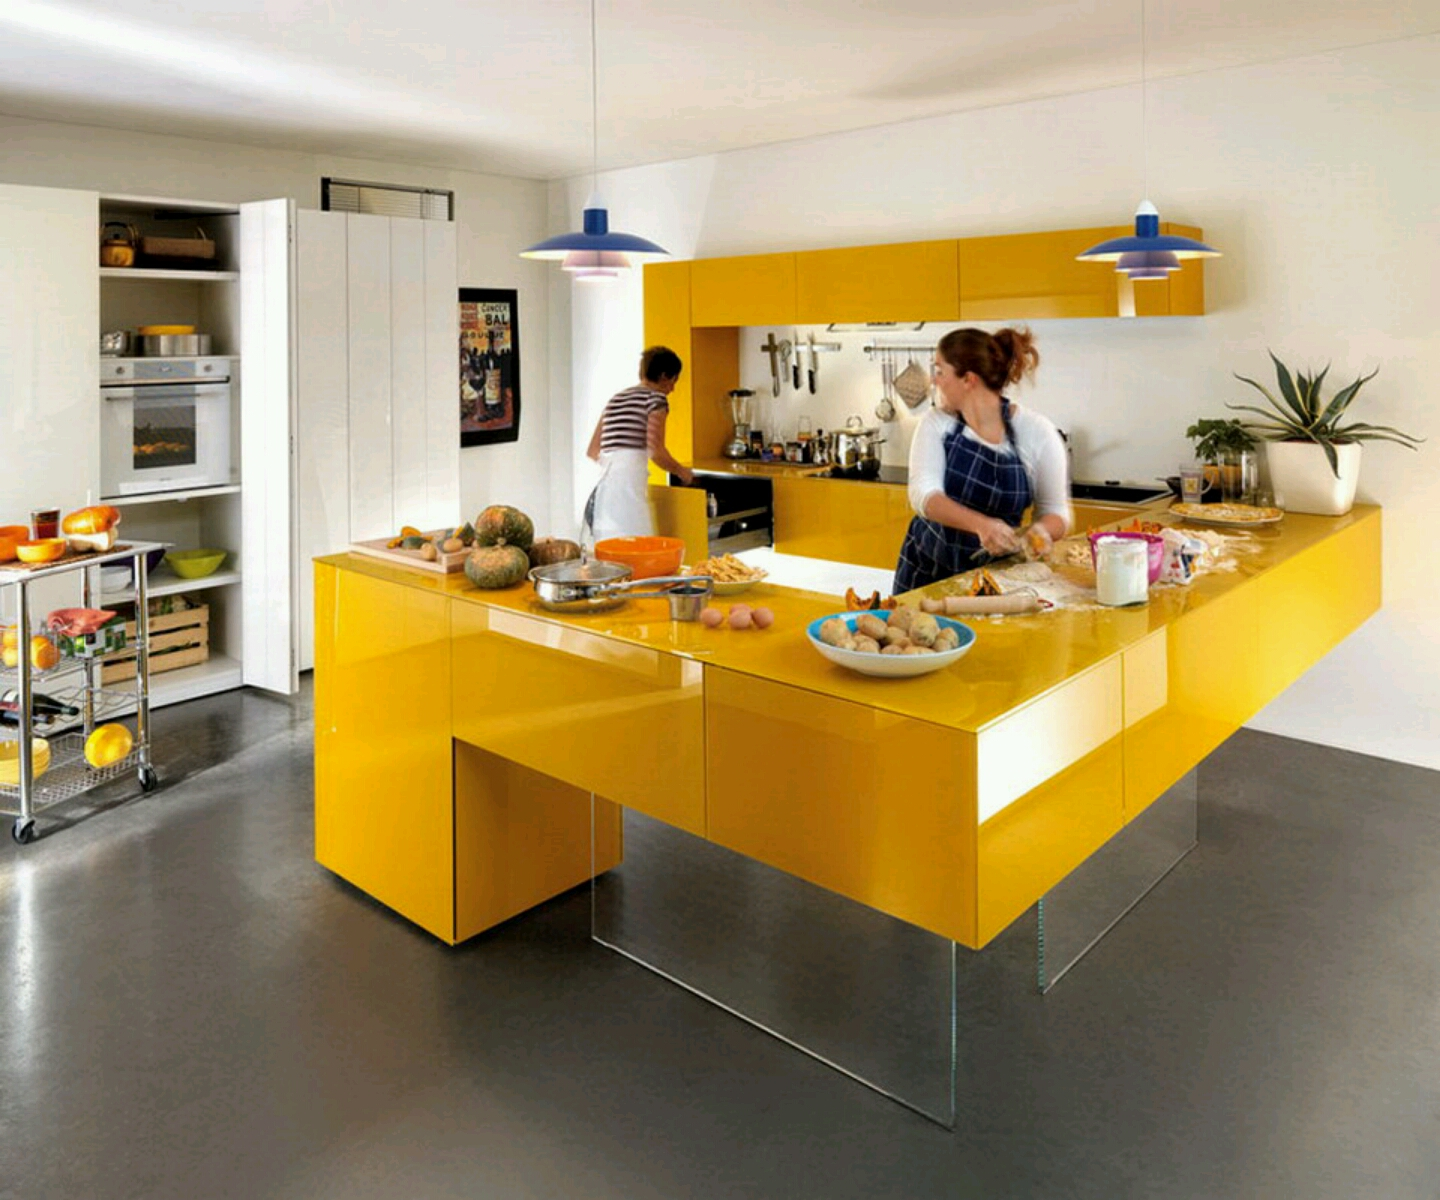 Modern kitchen cabinets designs ideas furniture gallery for Kitchen furniture design